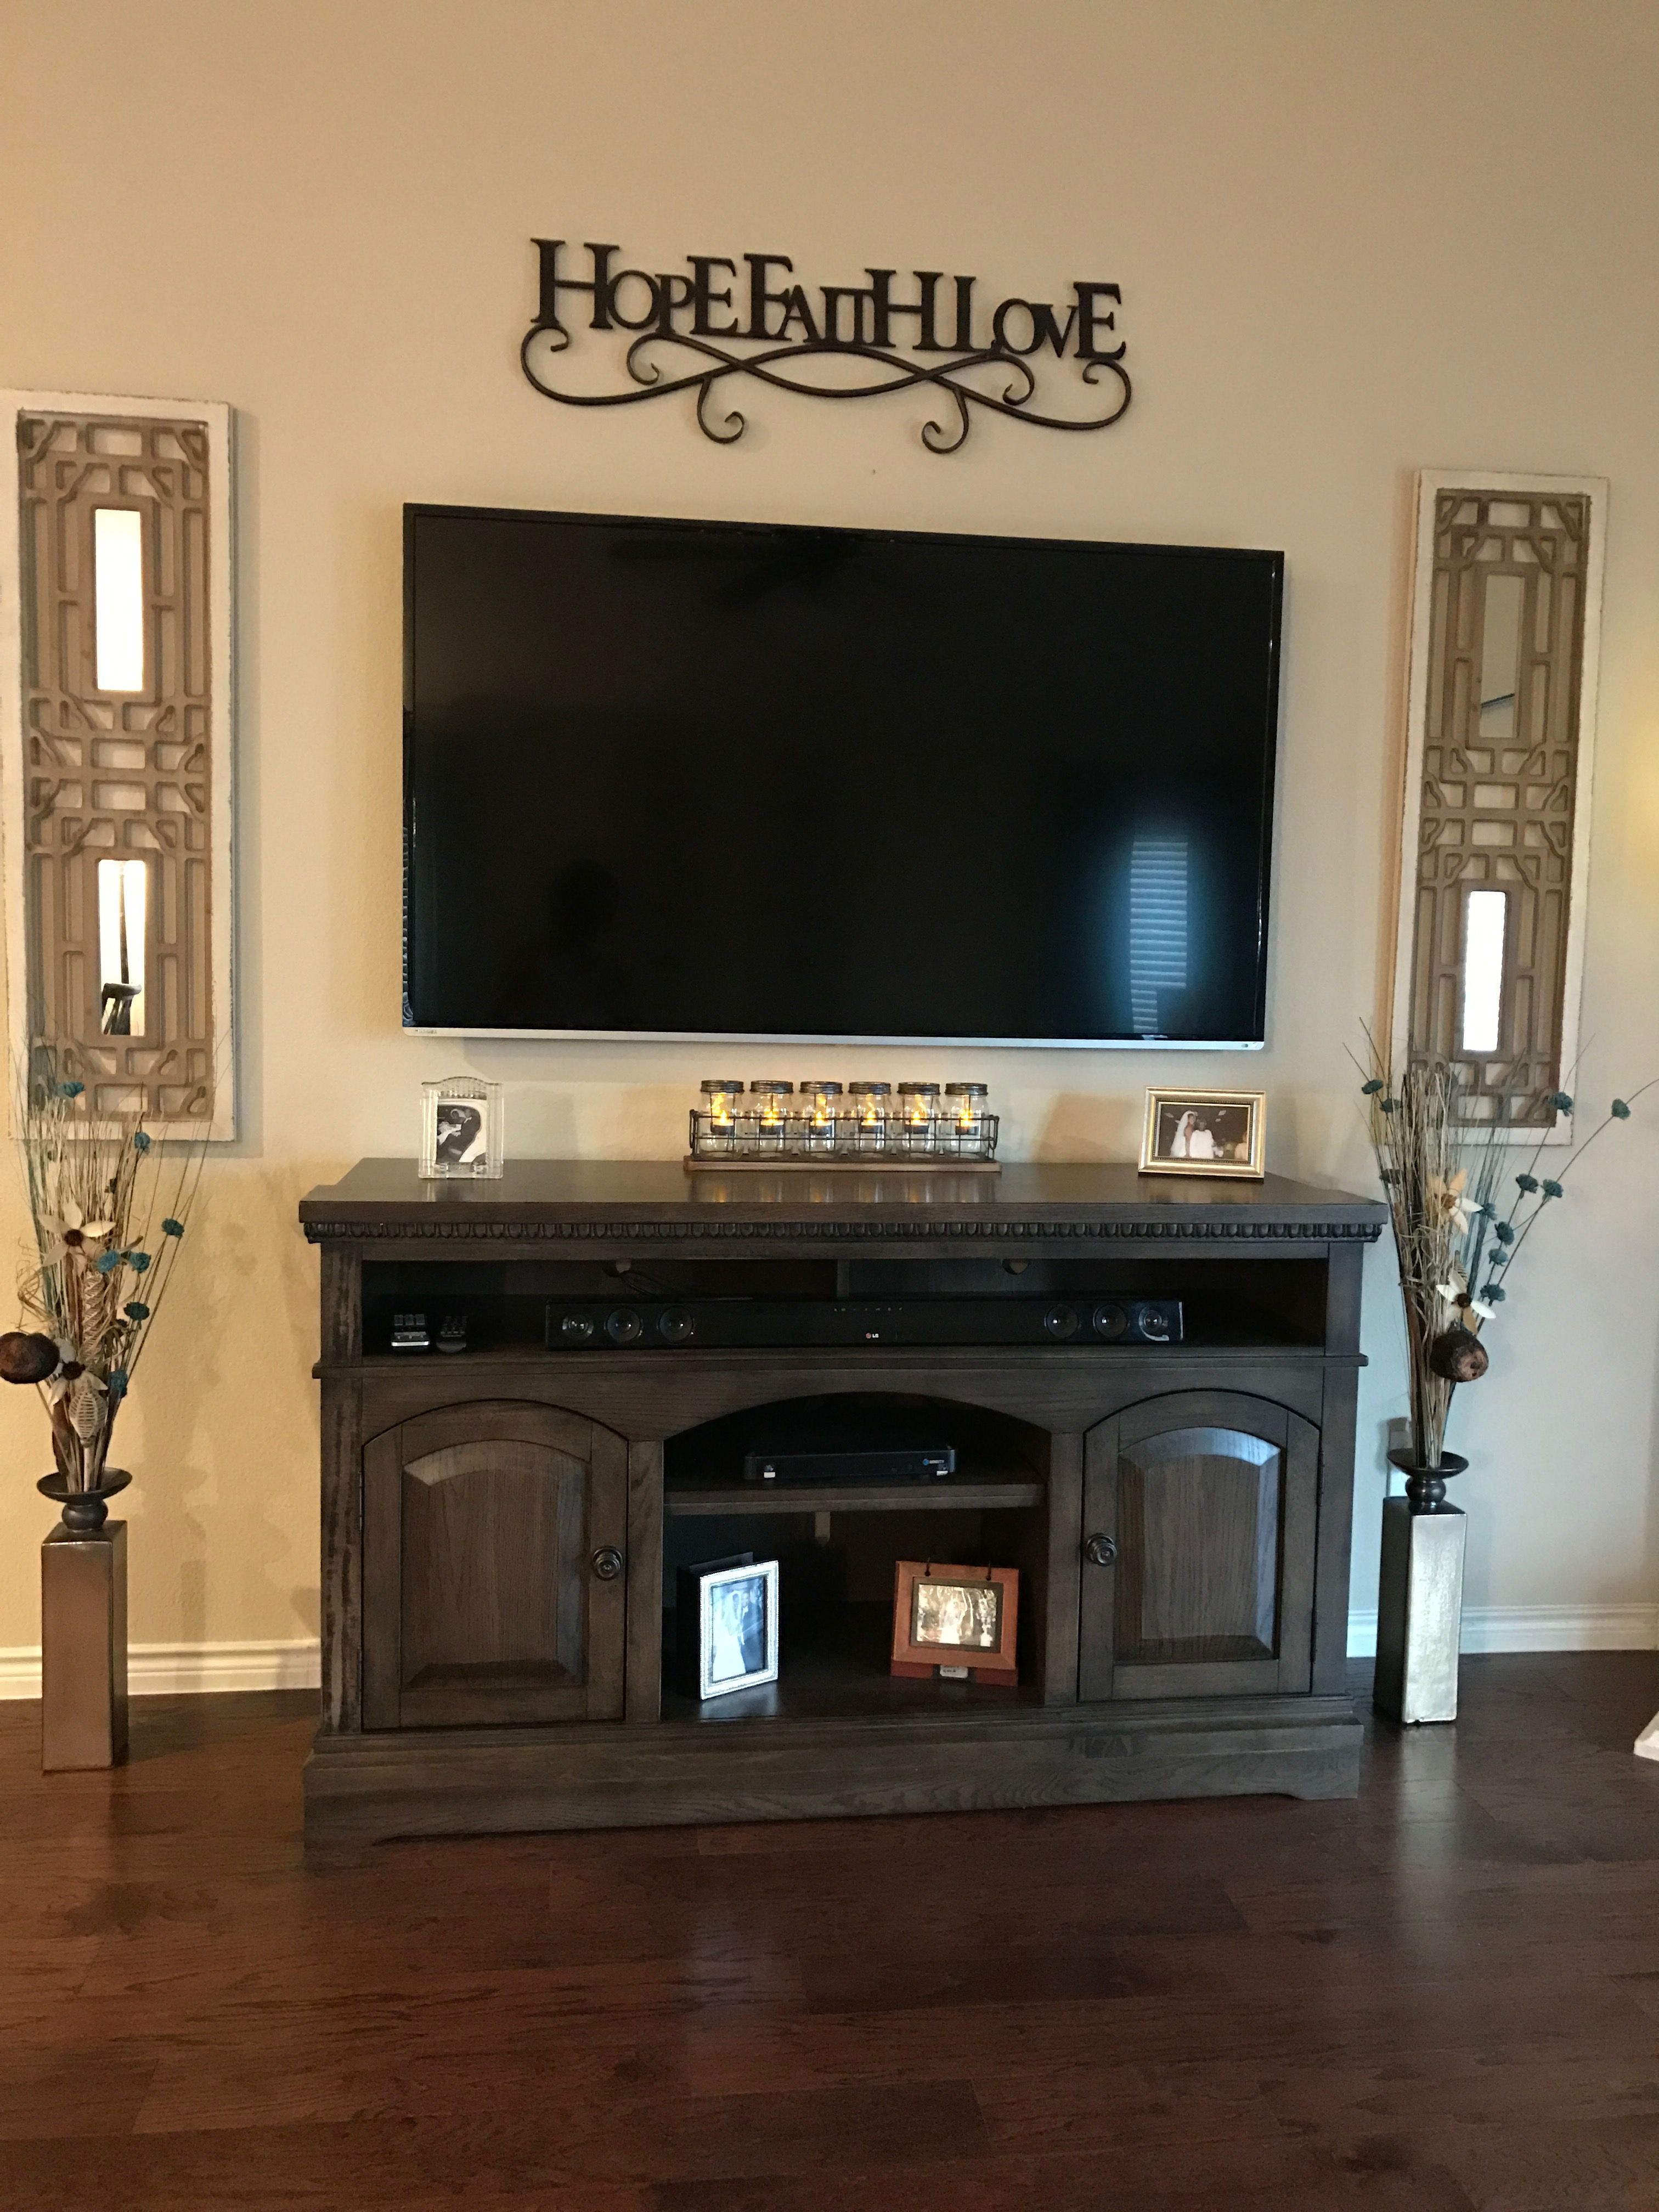 living room tv stand interior design rooms images 19 amazing diy ideas you can build right now my next 50 cool designs for your home bedroom black